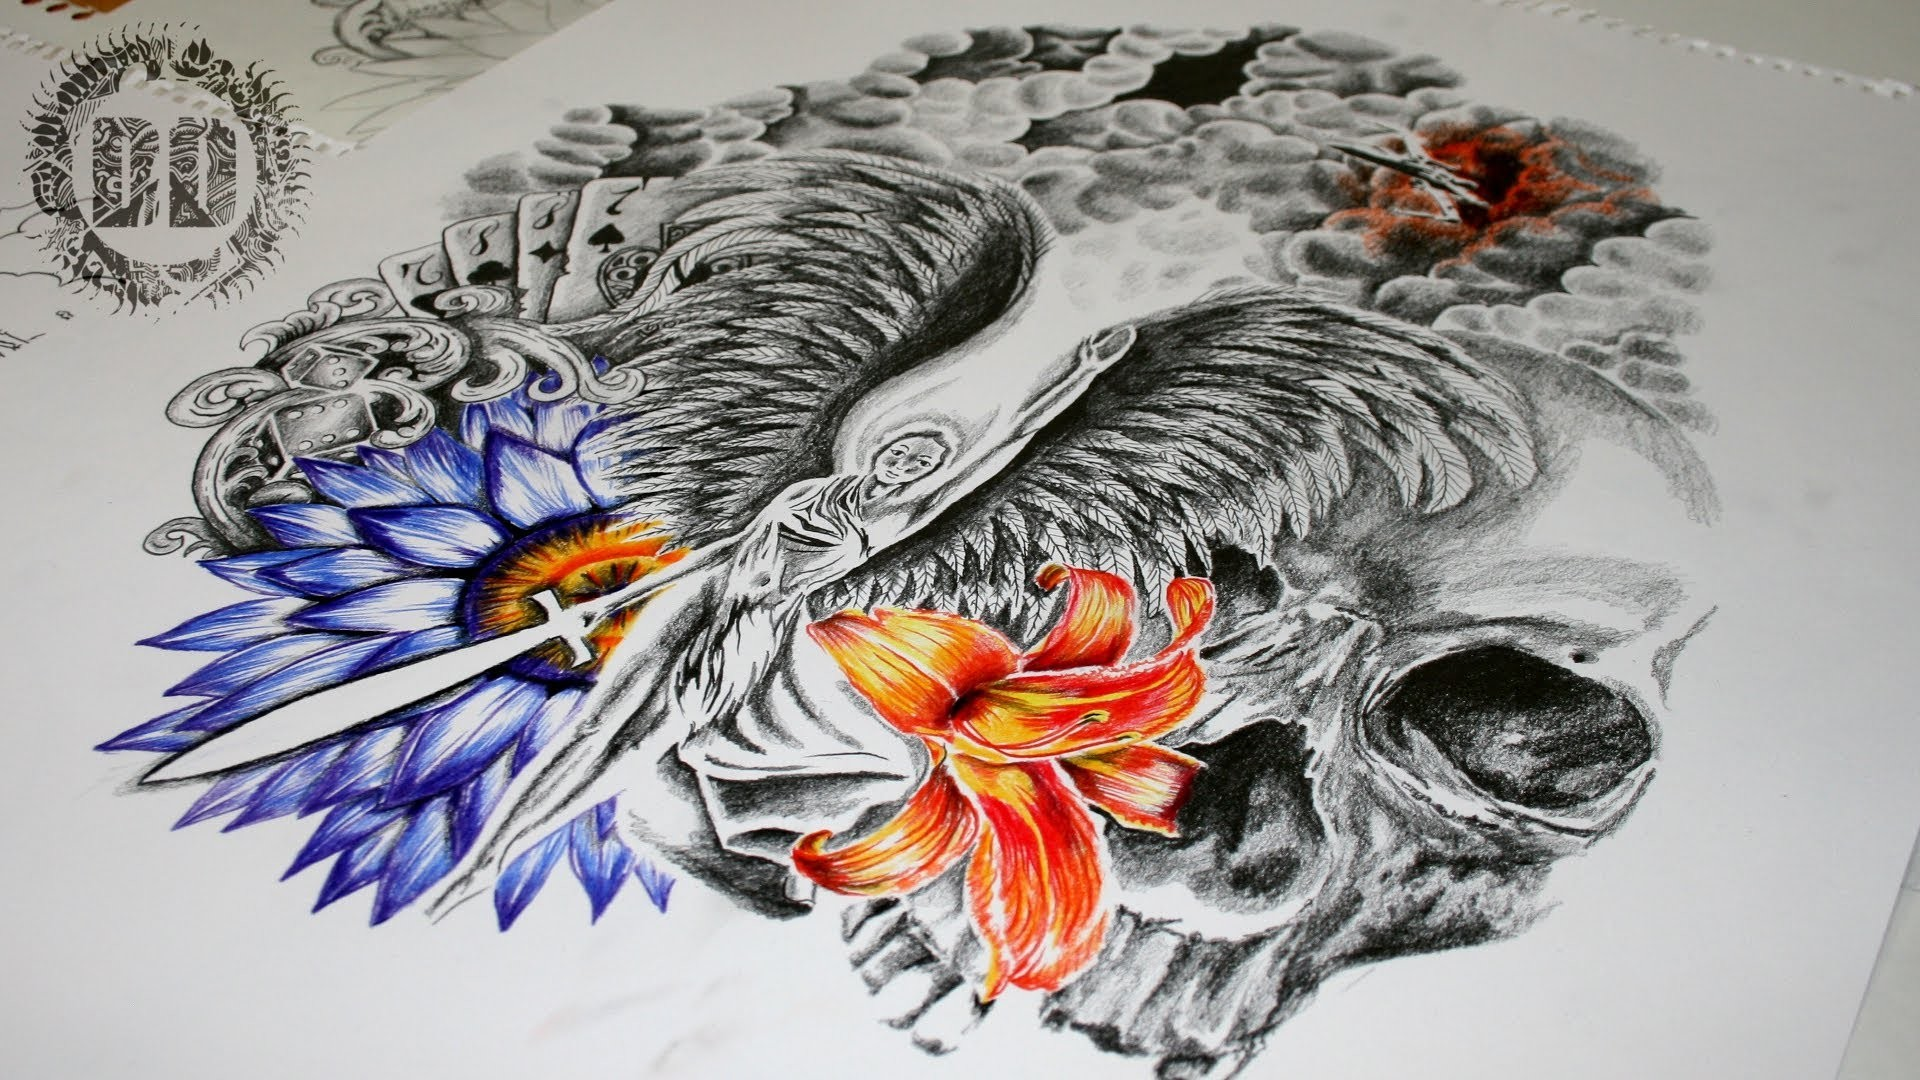 Res: 1920x1080, Hannya Tattoo Design Wallpaper - Android Apps on Google Play